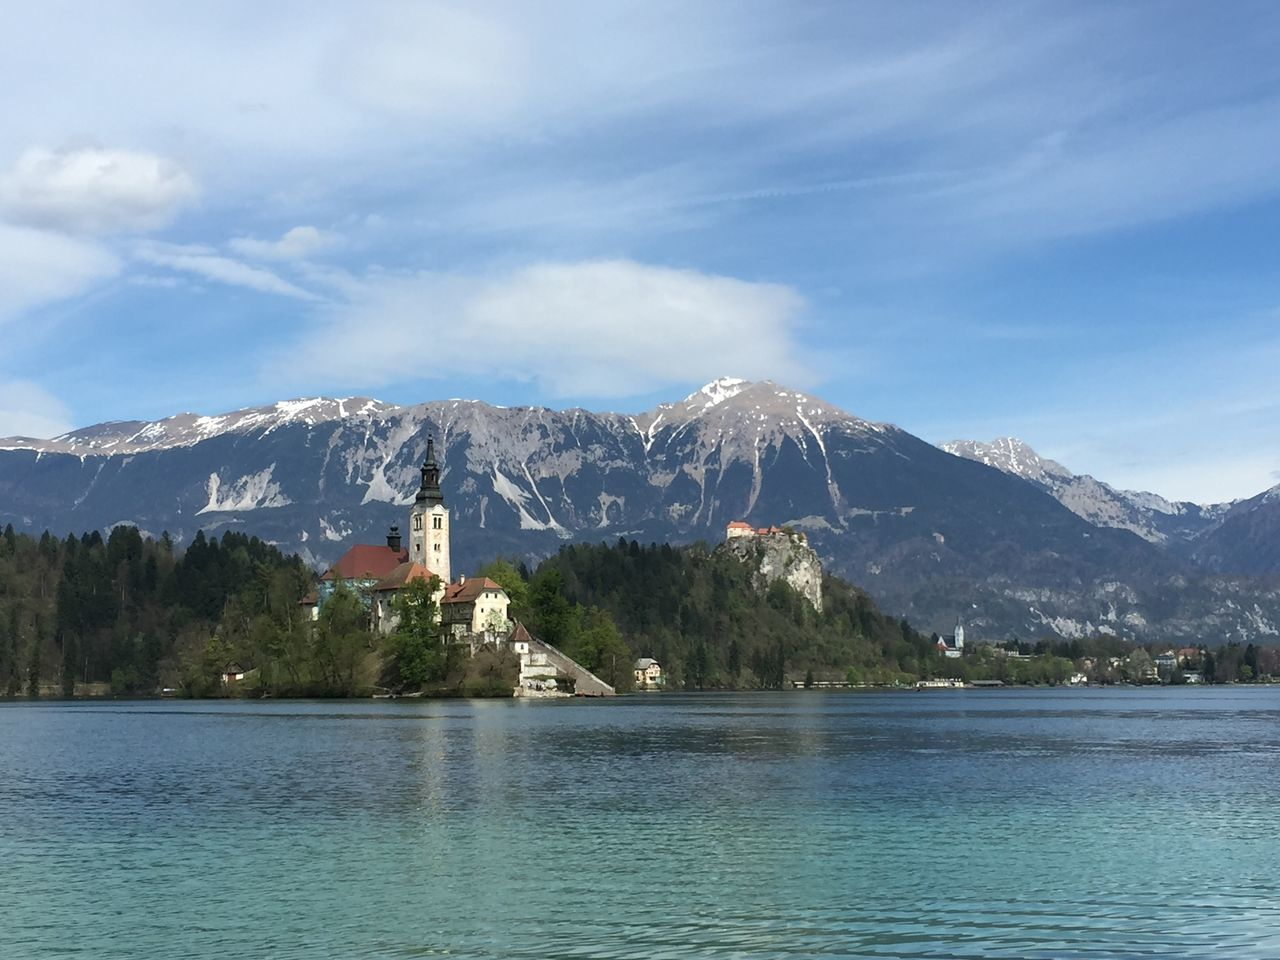 Alps Alps Snow Beauty In Nature Bled Castle Blue Sky And Clouds City Escape Clear Water Fairytale  Heaven Iphone6 Lake Lake Bled Mountain Nature No Filer No People Outdoor Scenics The Church On An Island Tranquility Waterfront